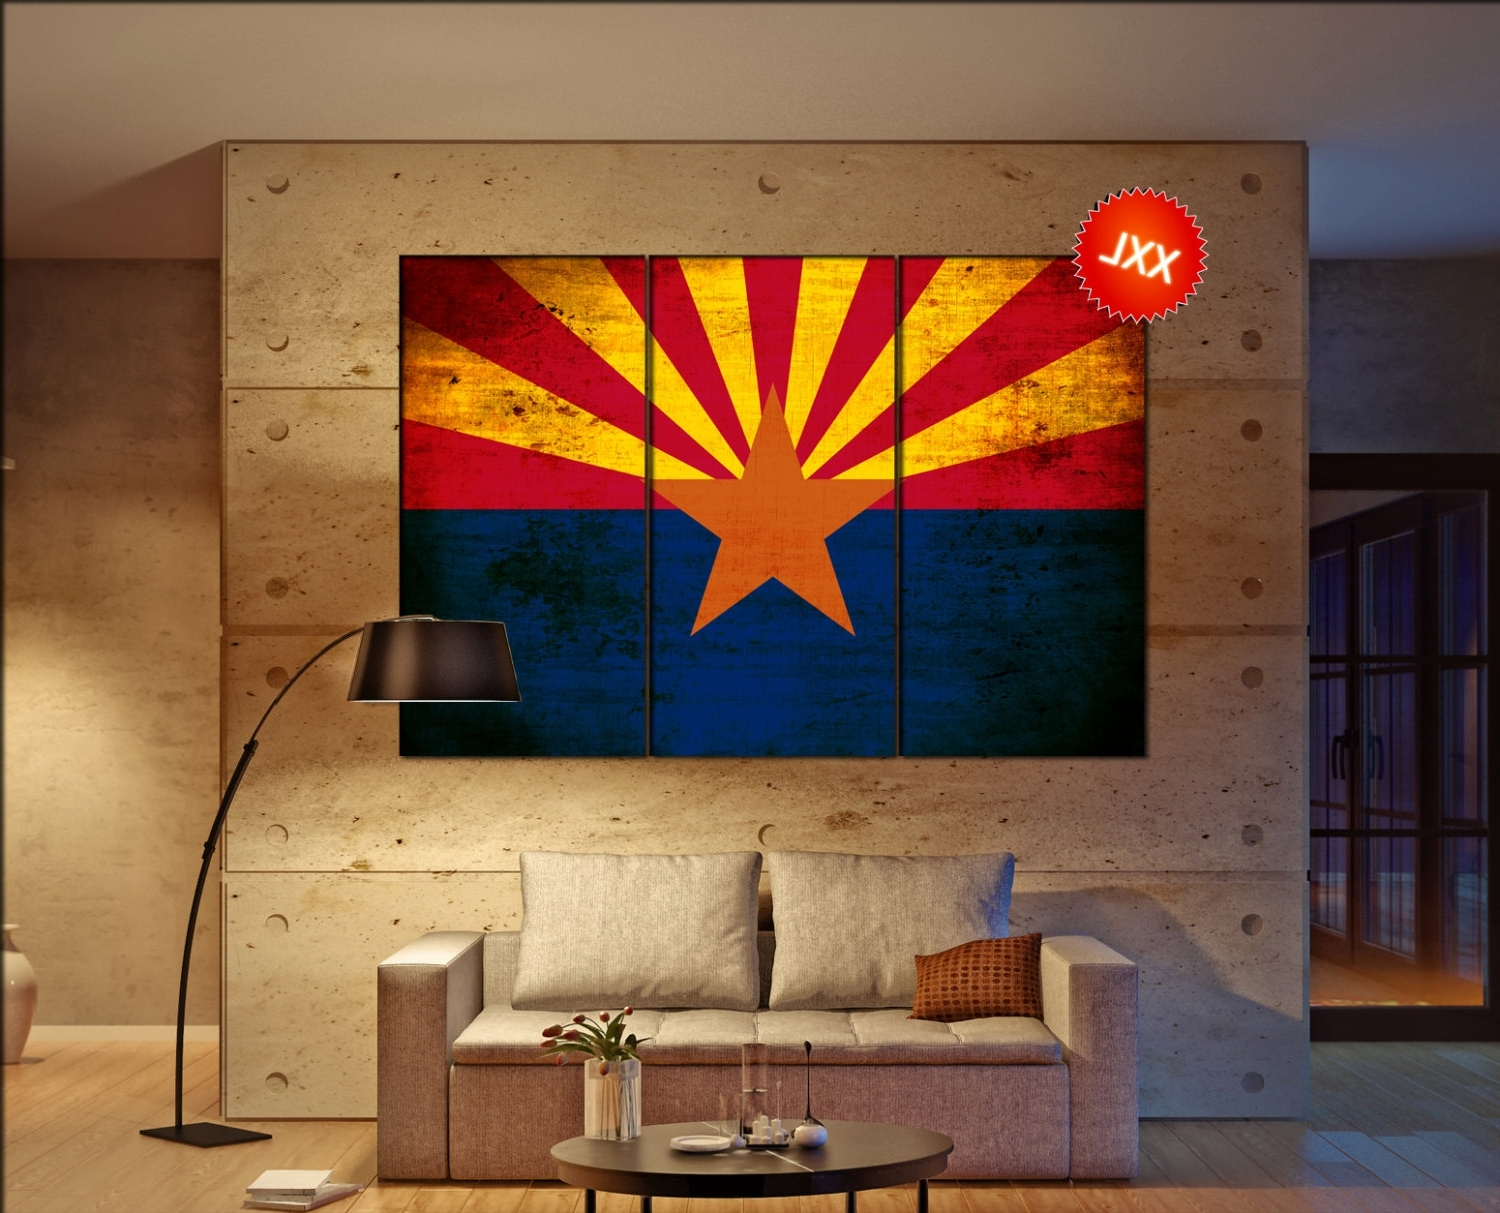 Recent 41 Arizona Wall Art, Best Phoenix Wall Art Products On Wanelo For Arizona Wall Art (Gallery 10 of 20)